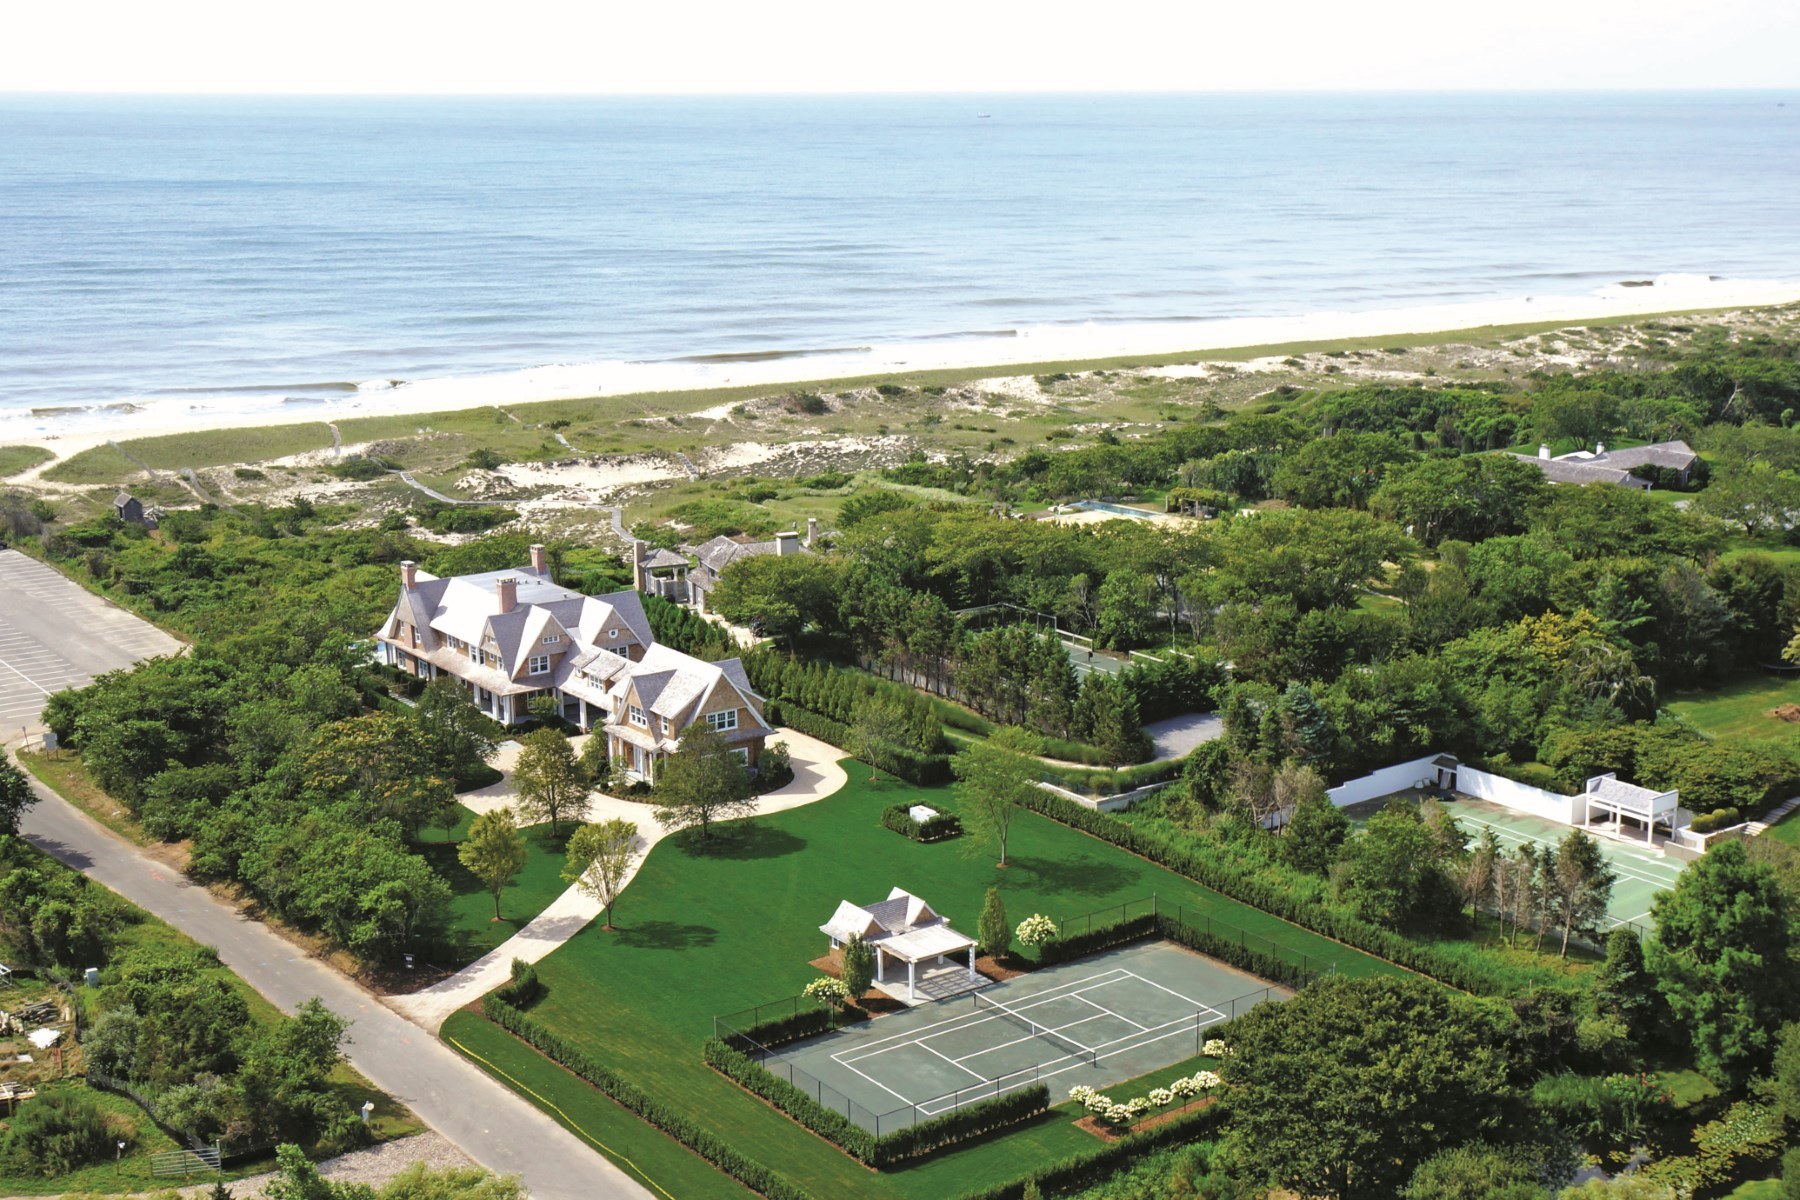 Single Family Home for Rent at East Hampton Oceanfront, Pool and Tennis 38 Two Mile Hollow Road East Hampton Village, East Hampton, New York 11937 United States